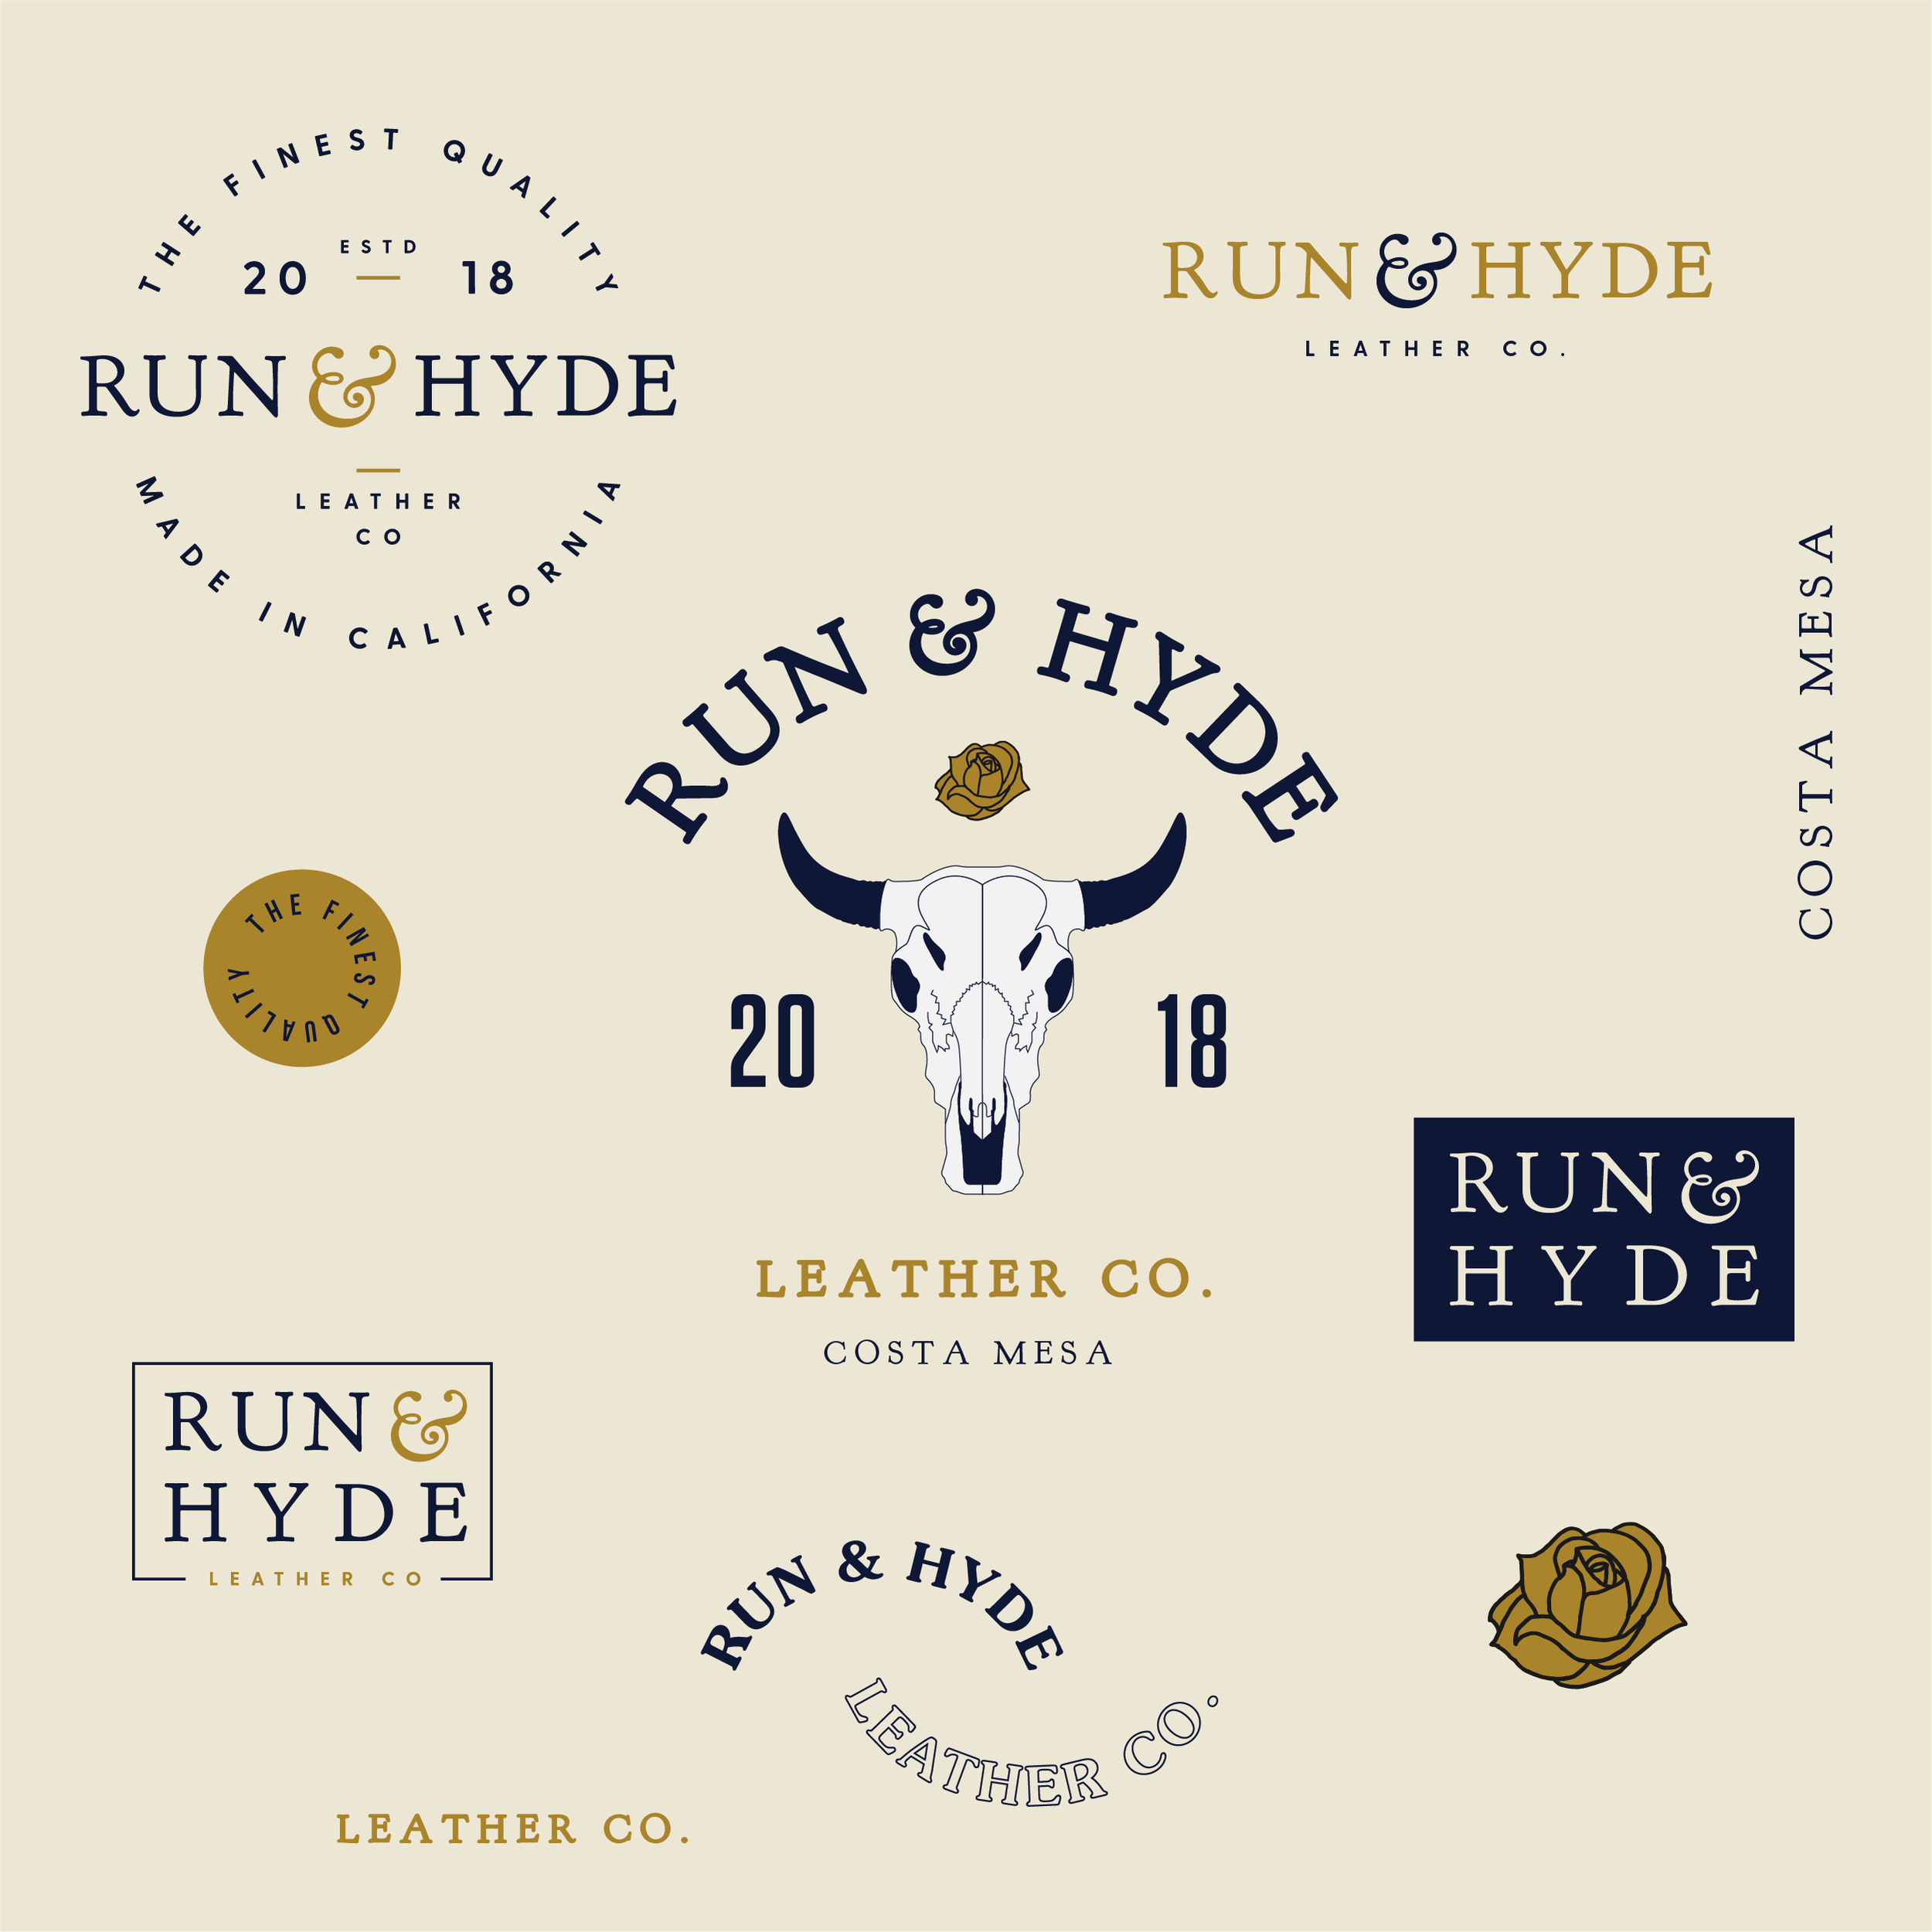 run hyde leather branding faceplant advertising agency austin run hyde leather branding